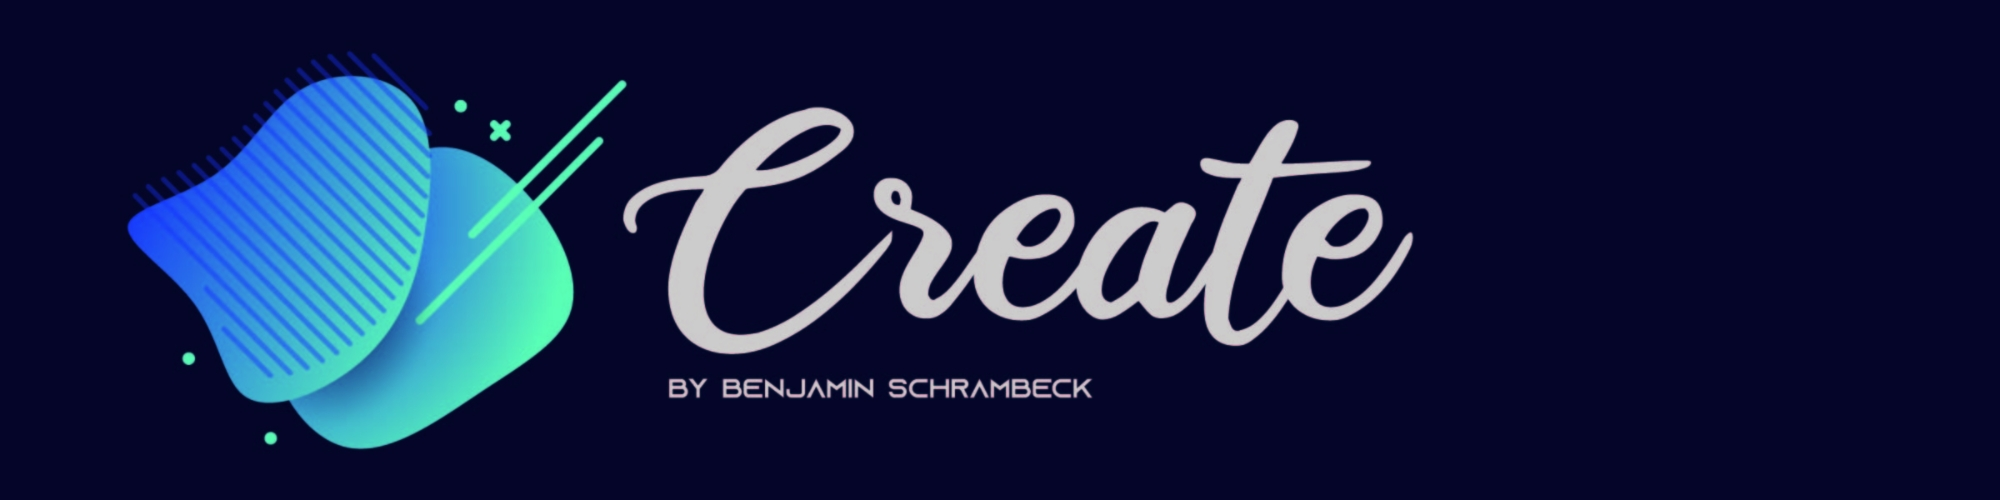 Showroom - Benjamin Schrambeck